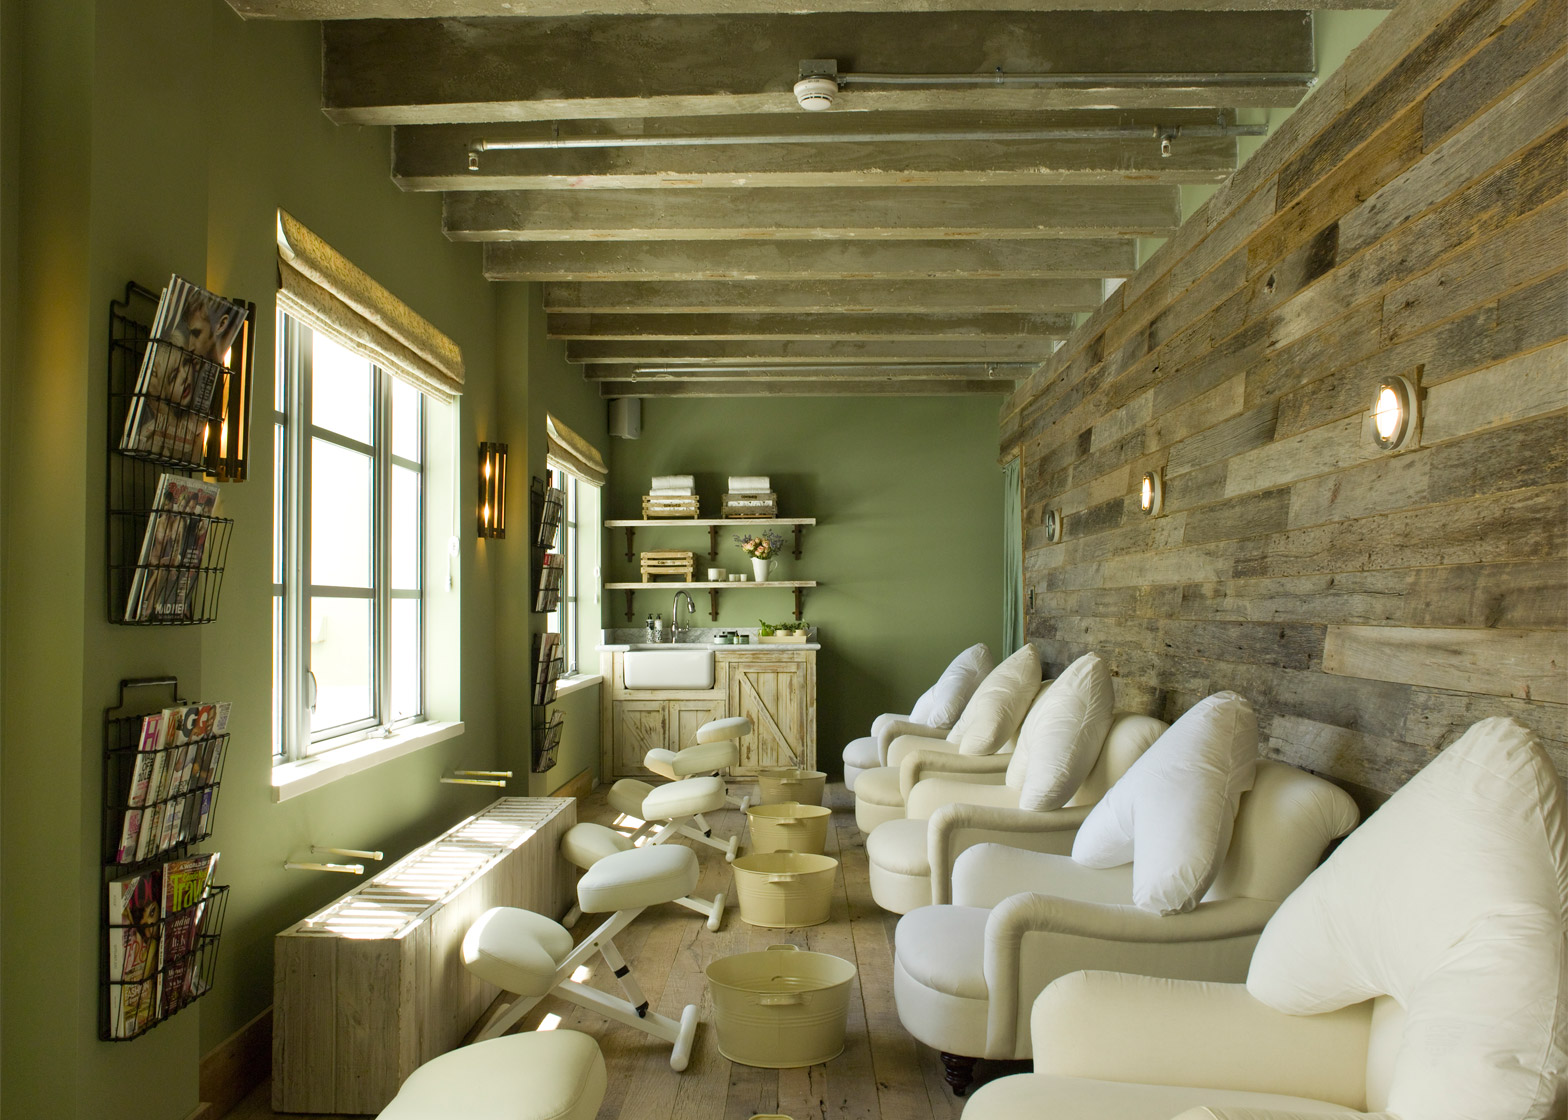 Cowshed spa at Soho Beach House, Miami, USA